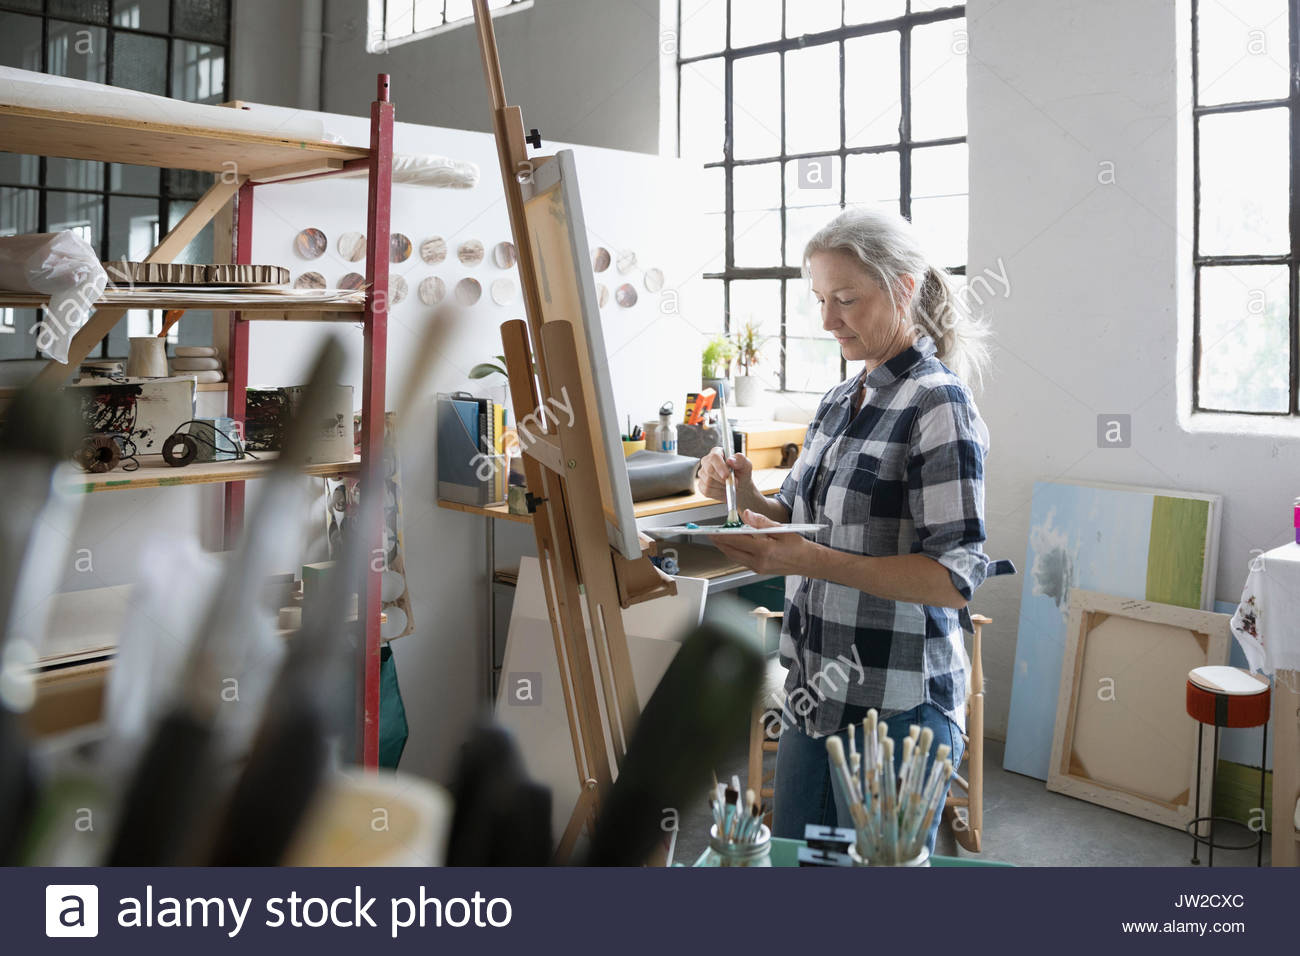 Female painter with palette painting at canvas in art studio - Stock Image